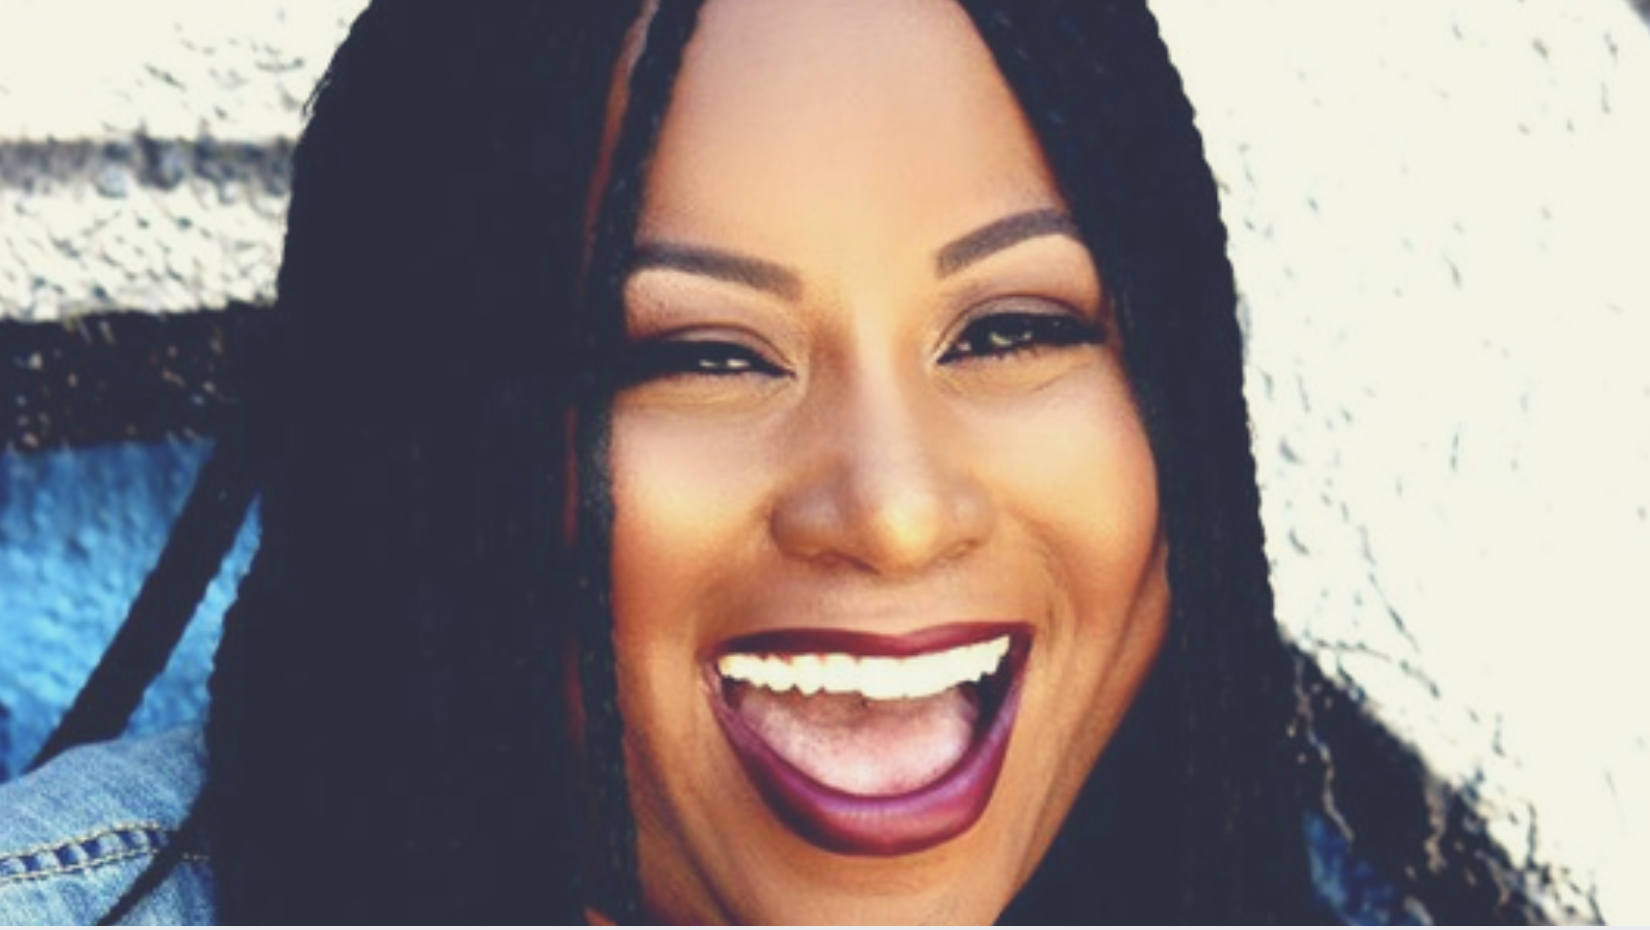 About Quencie - My name is Quencie Thomas, and I interview the stars you love! I am the founder and host of Studio Q, which delivers fun, authentic and unguarded conversations. I go beyond Social Media and Tabloid headlines to really connect you with the person.